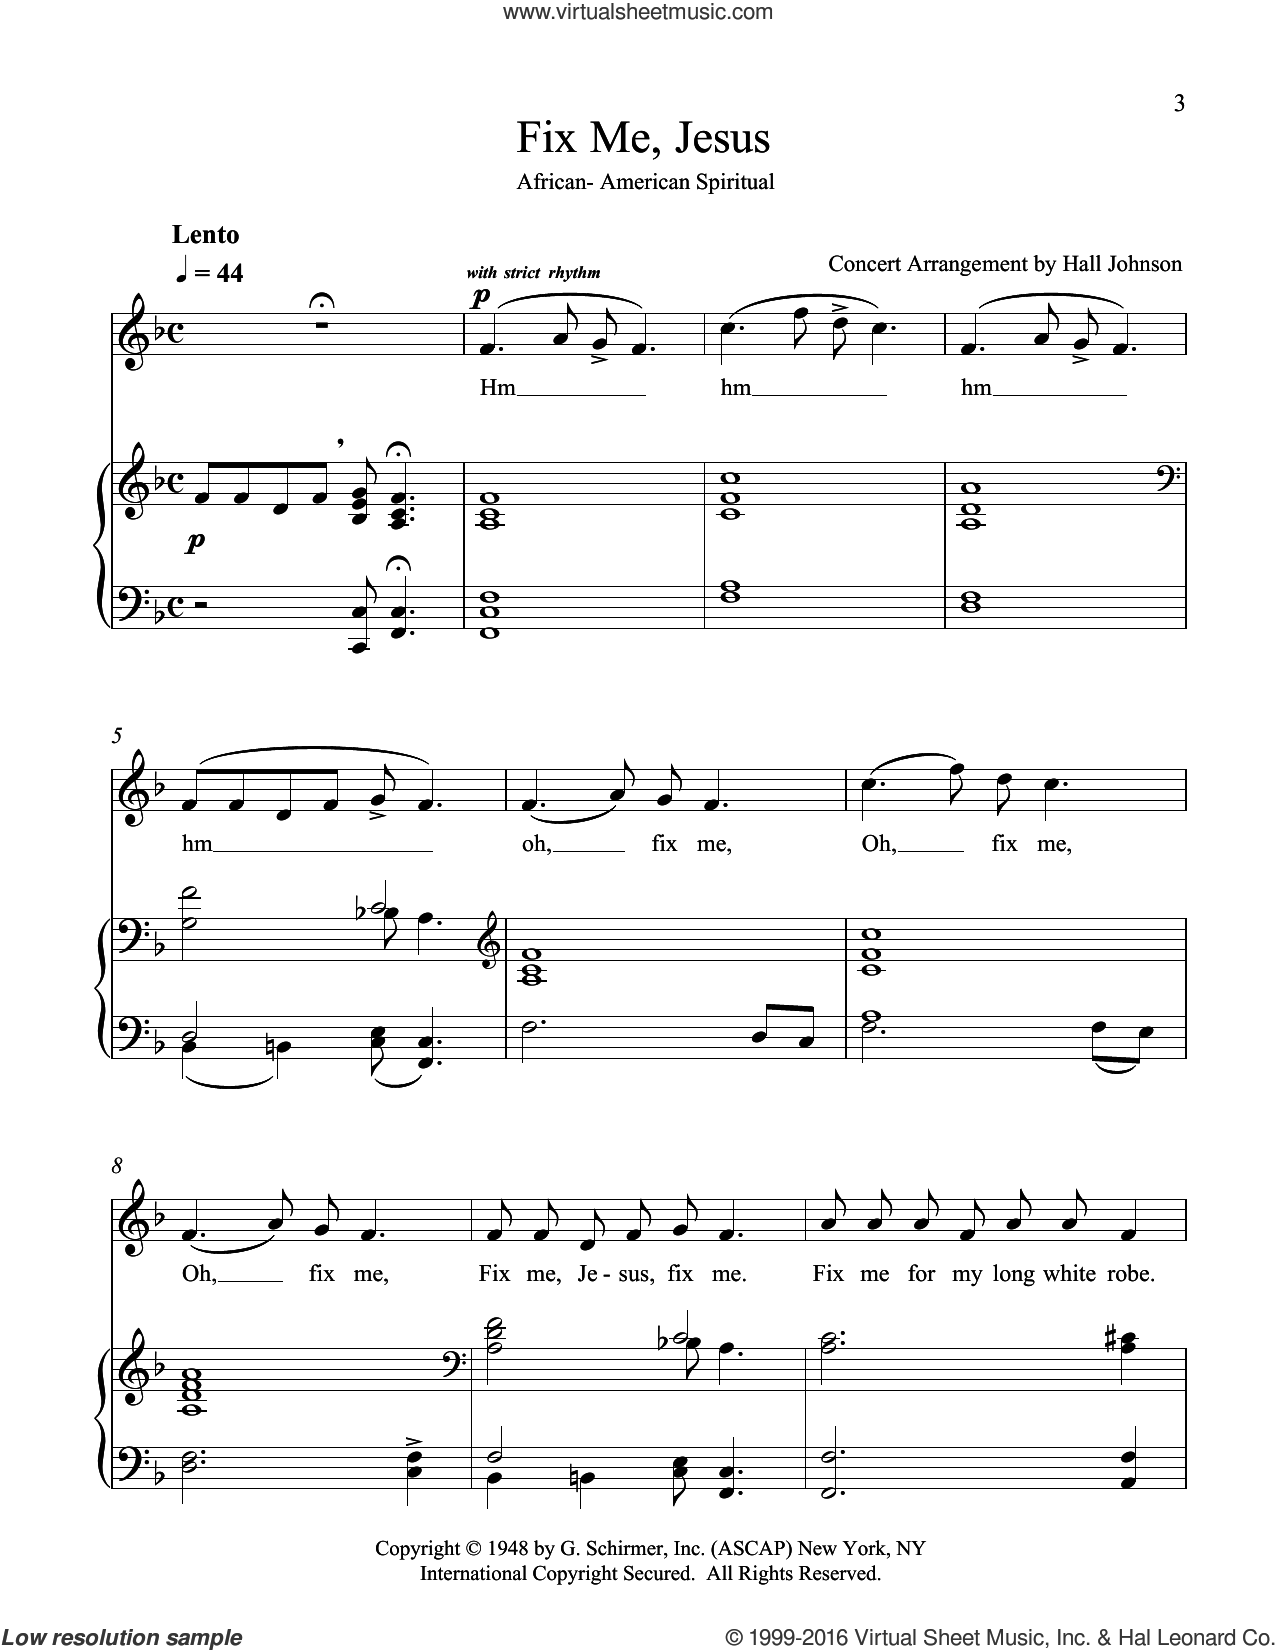 Fix Me, Jesus (F) sheet music for voice and piano by Hall Johnson, classical score, intermediate skill level